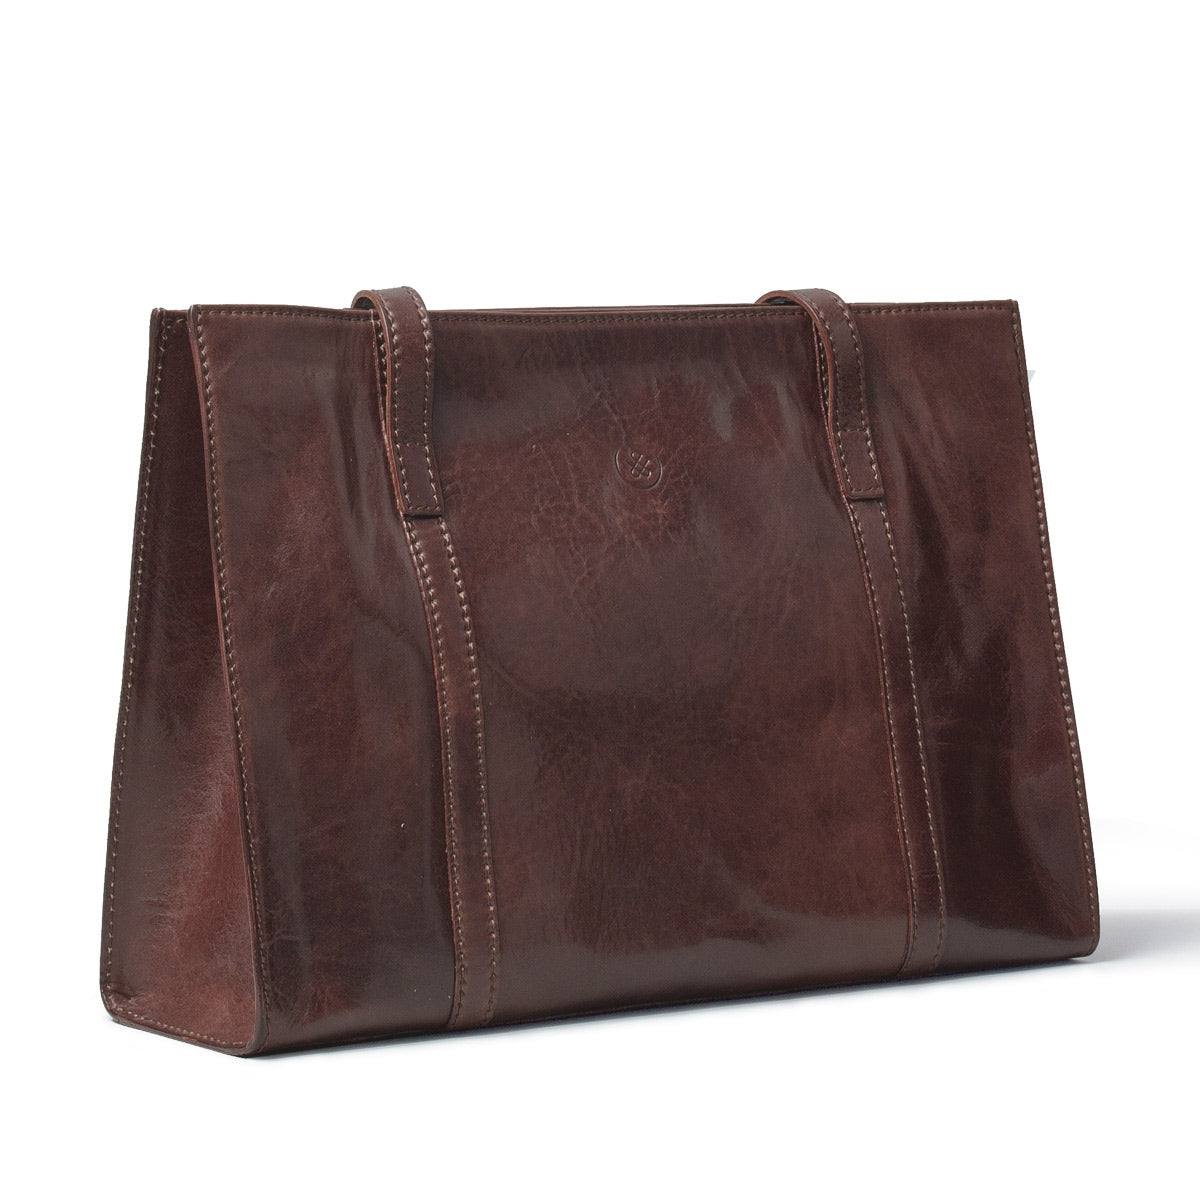 Image 2 of the 'Rivara' Brown Large Leather Shoulder Bag For Ladies